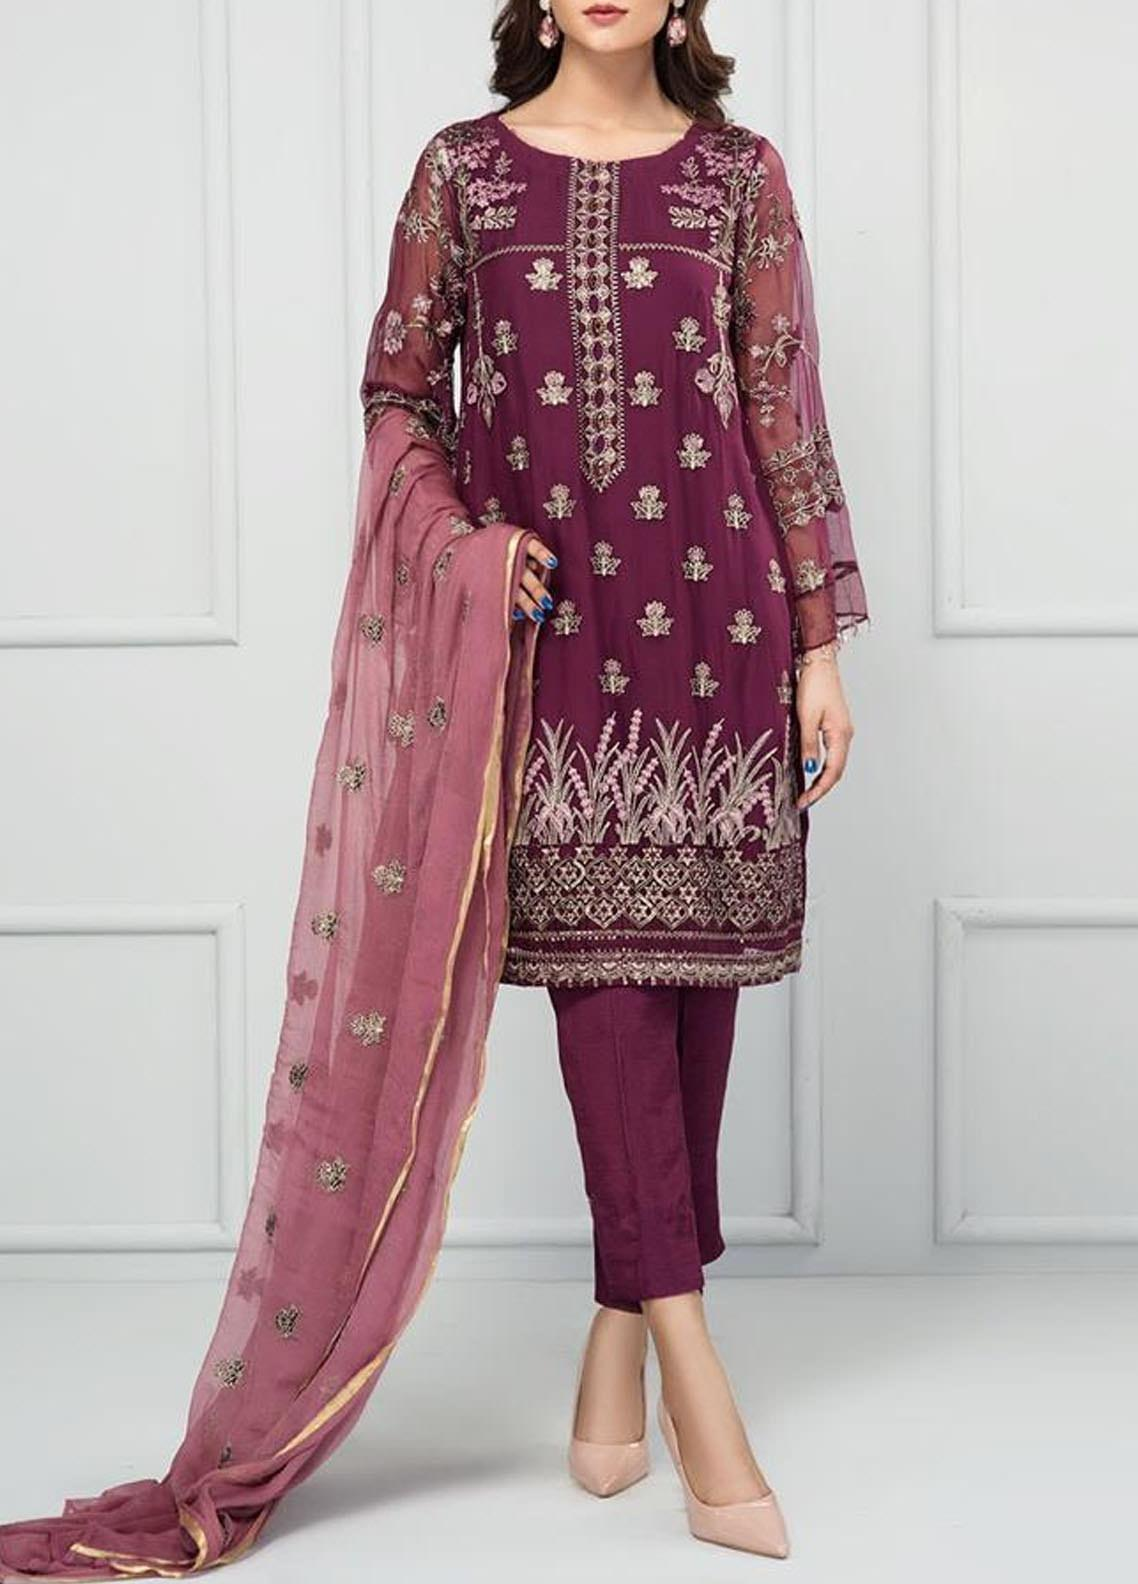 XENIA Formals Embroidered Chiffon Stitched 3 Piece Suit XFR-20-132 ROSALIE